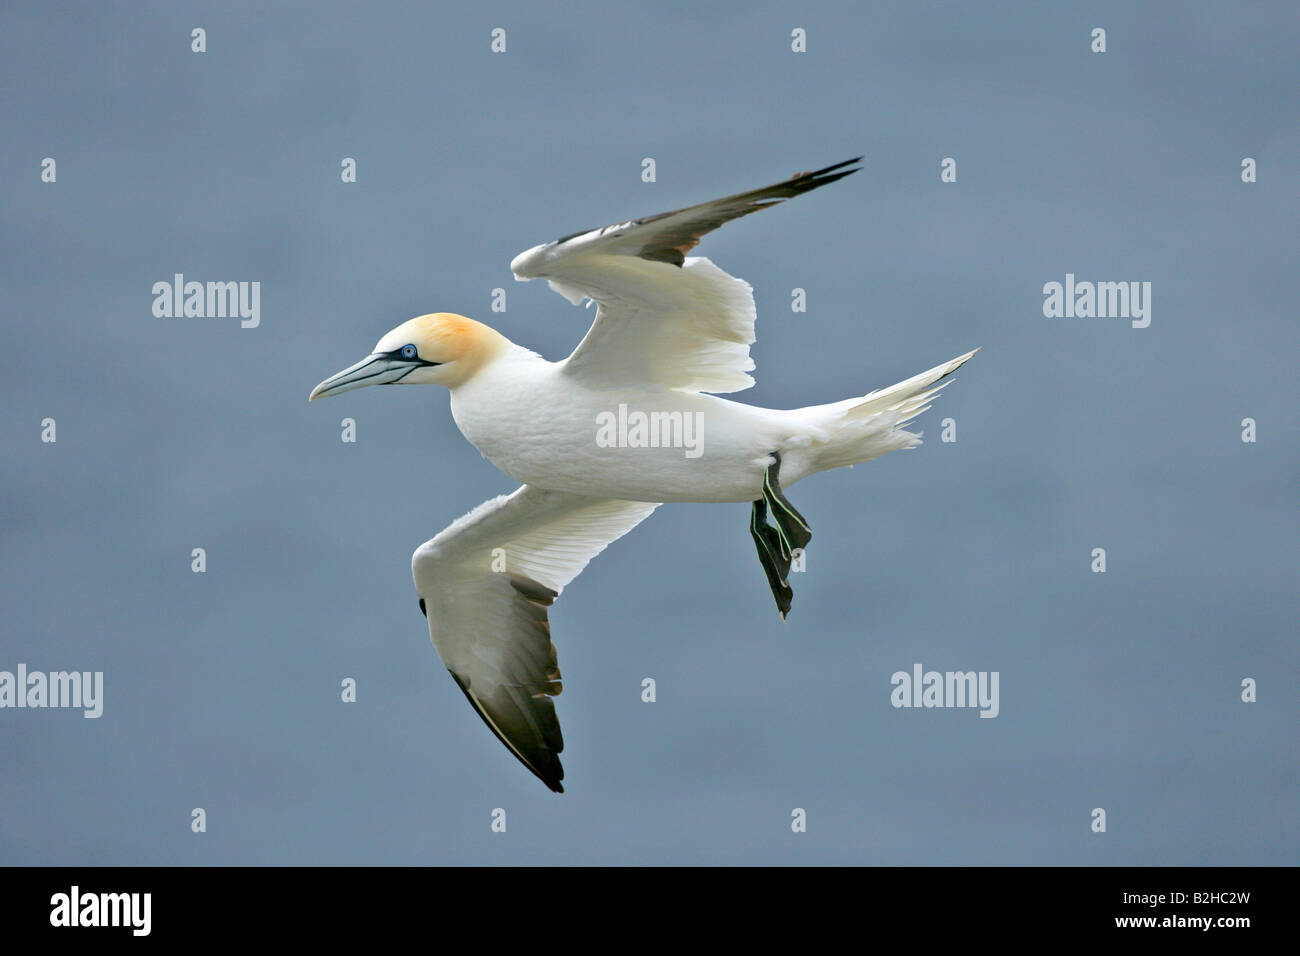 Gannet Sula Bassana in flight departing from breeding colony nestled in steep cliffs Hermaness Nature Reserve Unst - Stock Image